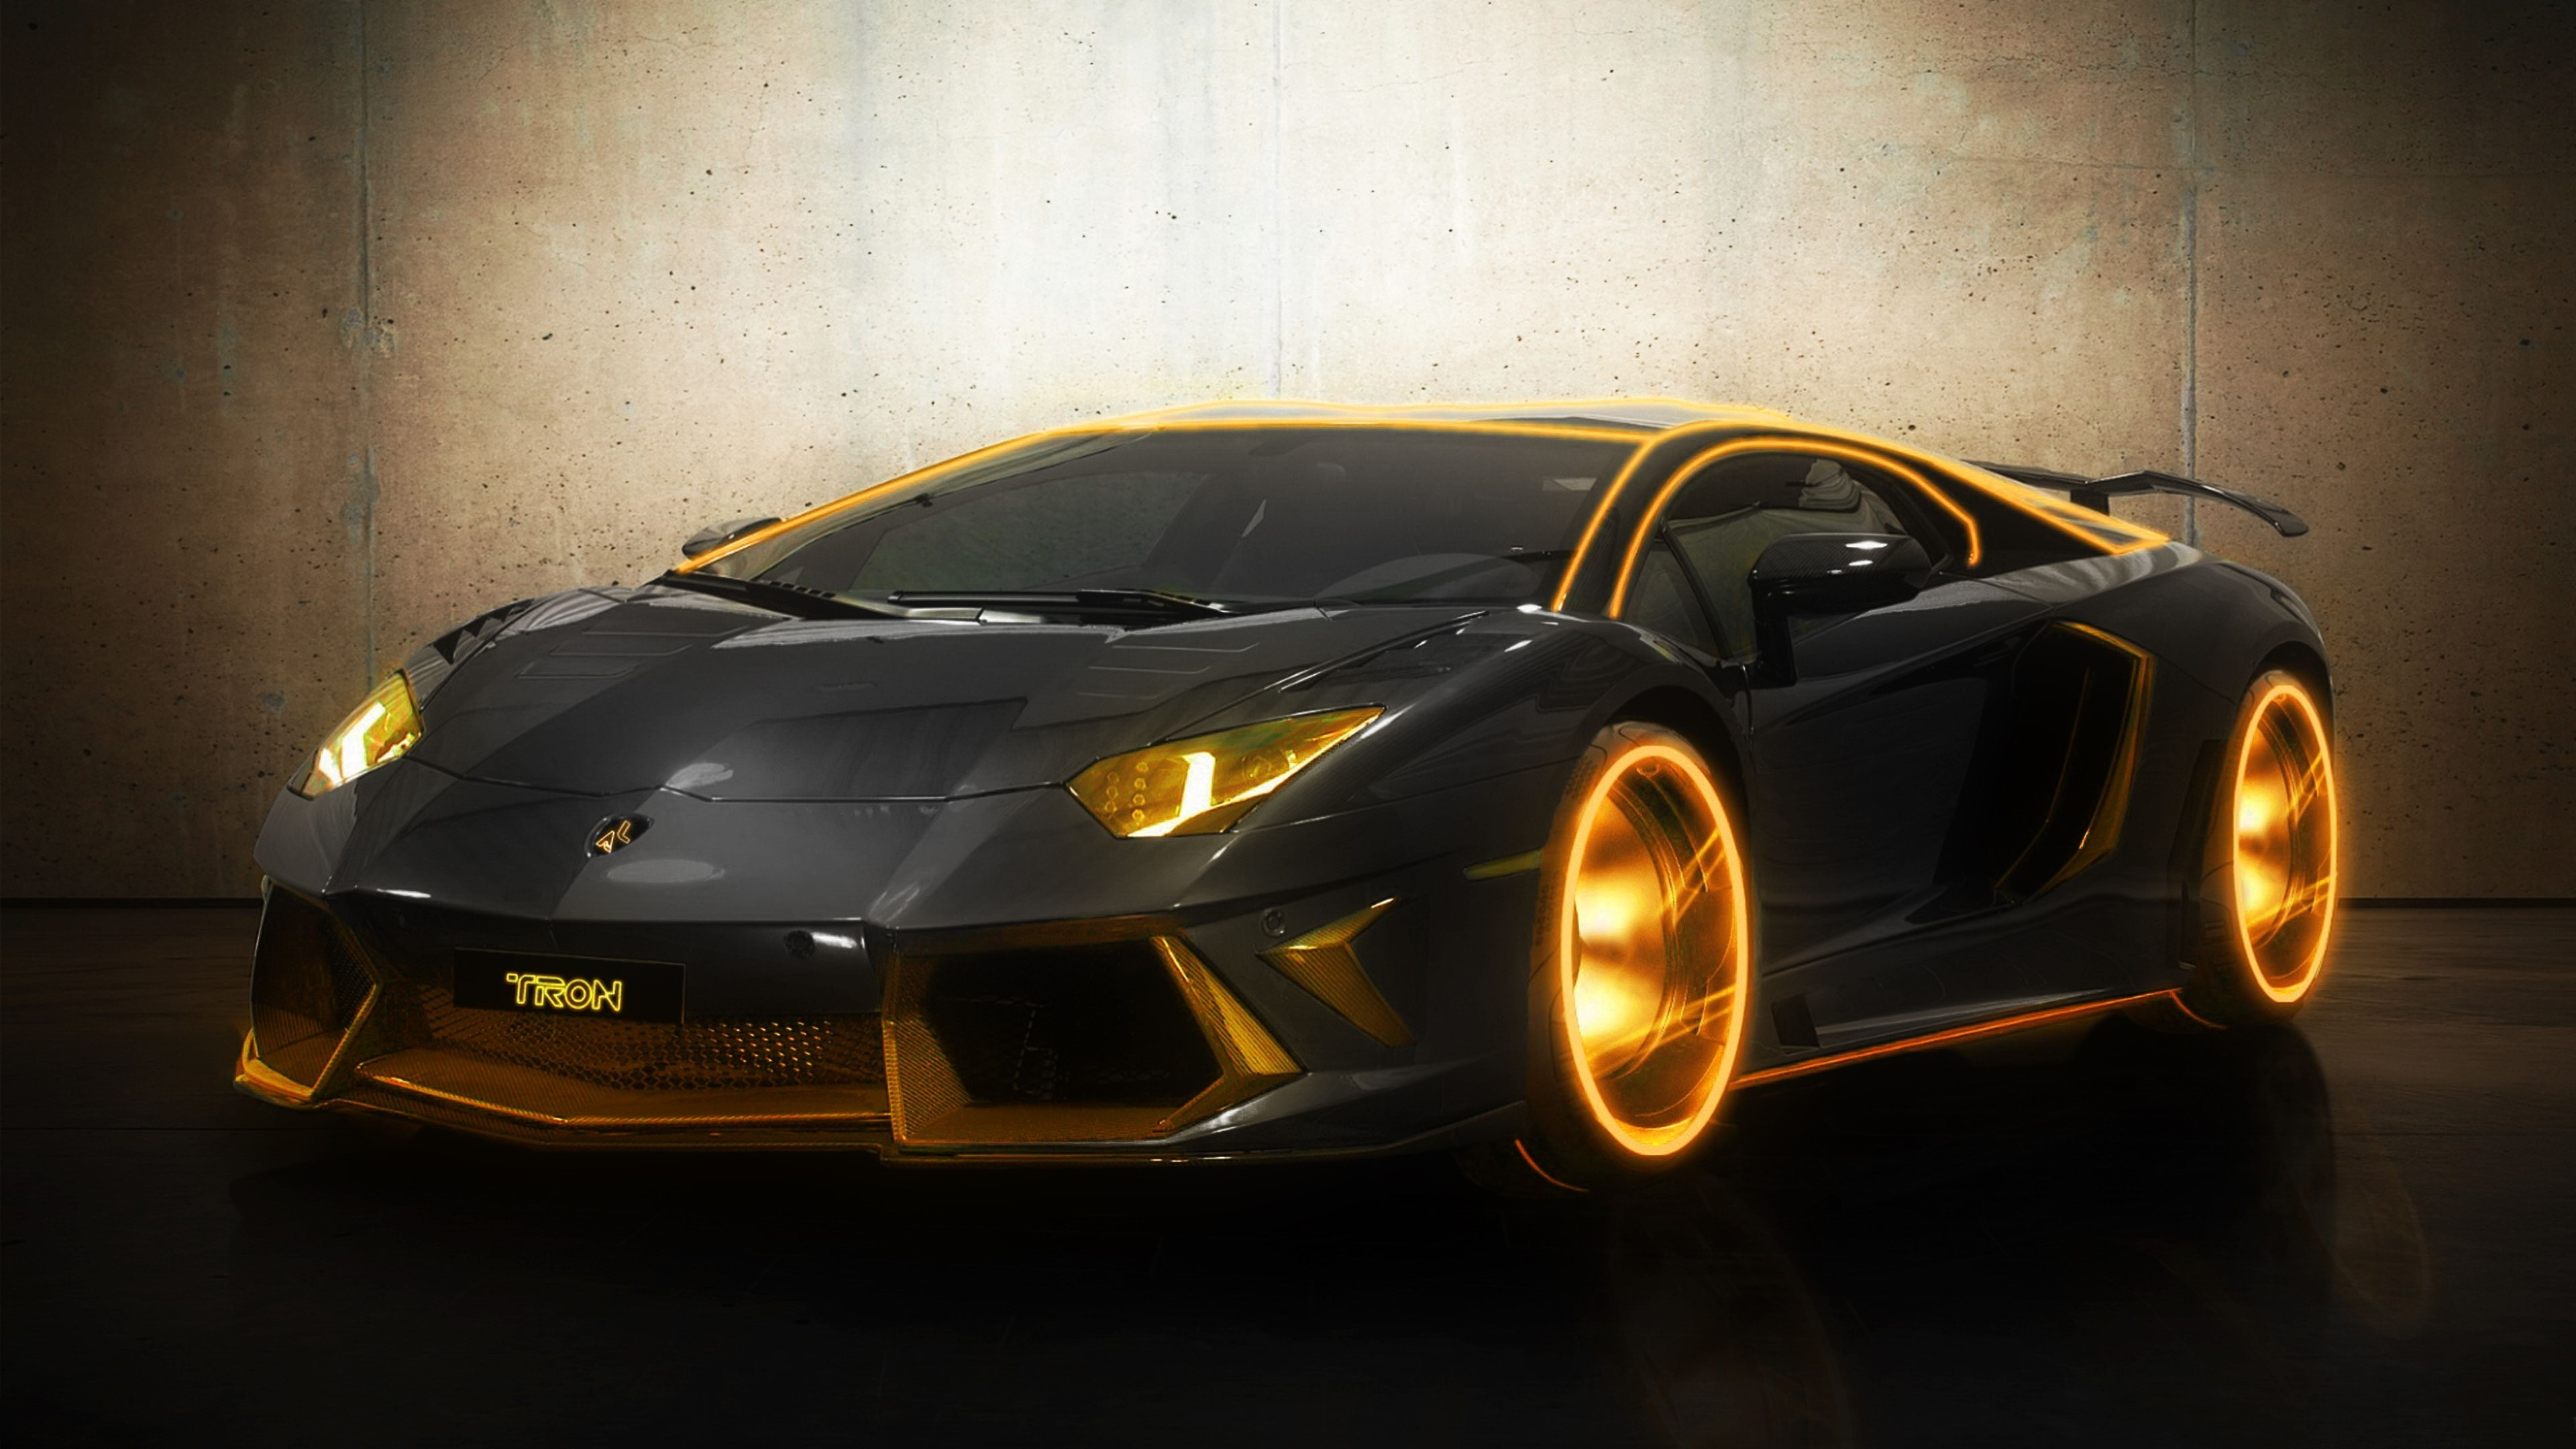 Orange Tron Lamborghini Aventador